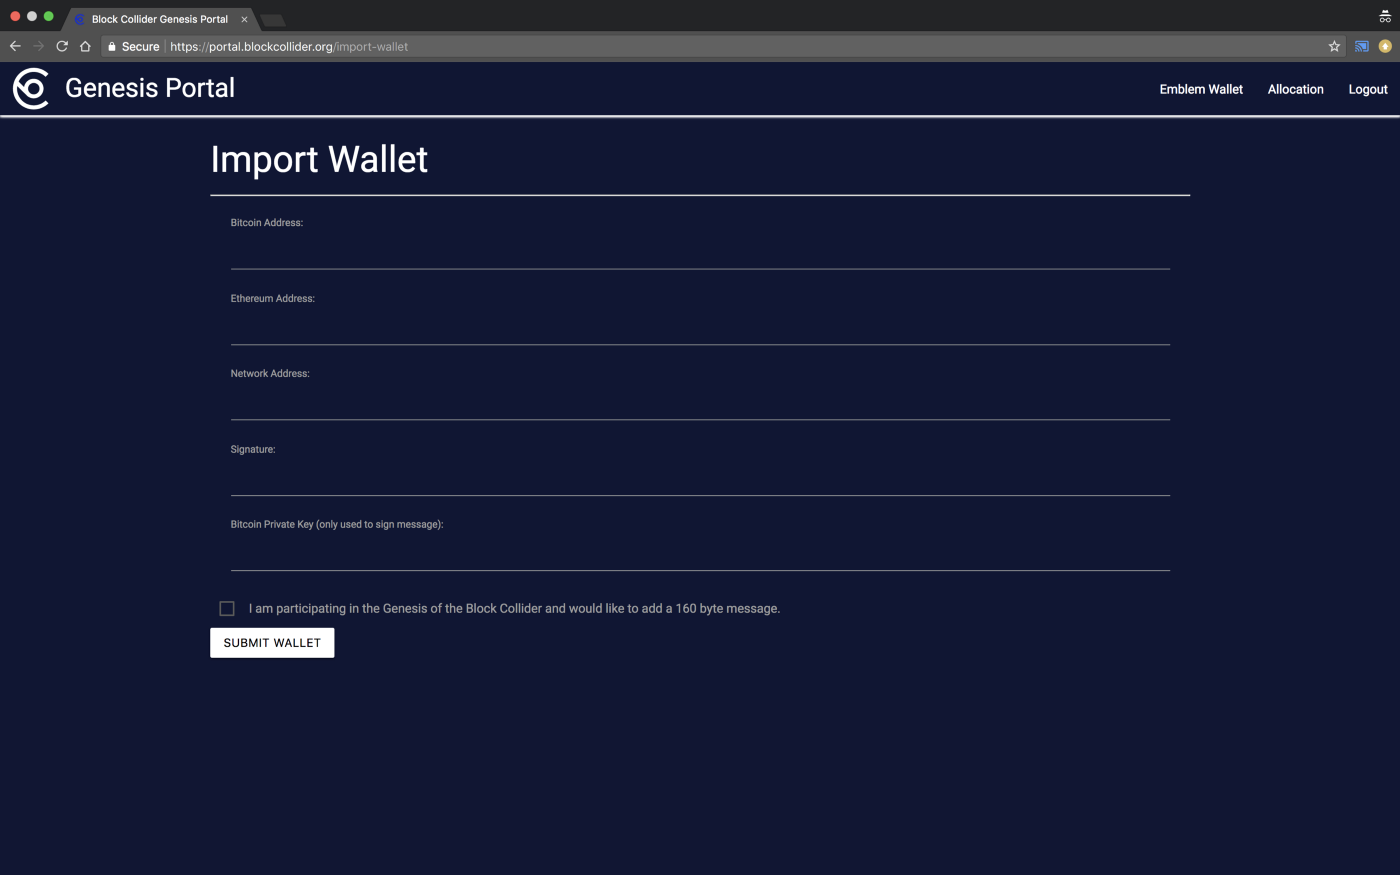 Creating a wallet and contributing in the Block Collider Genesis Event